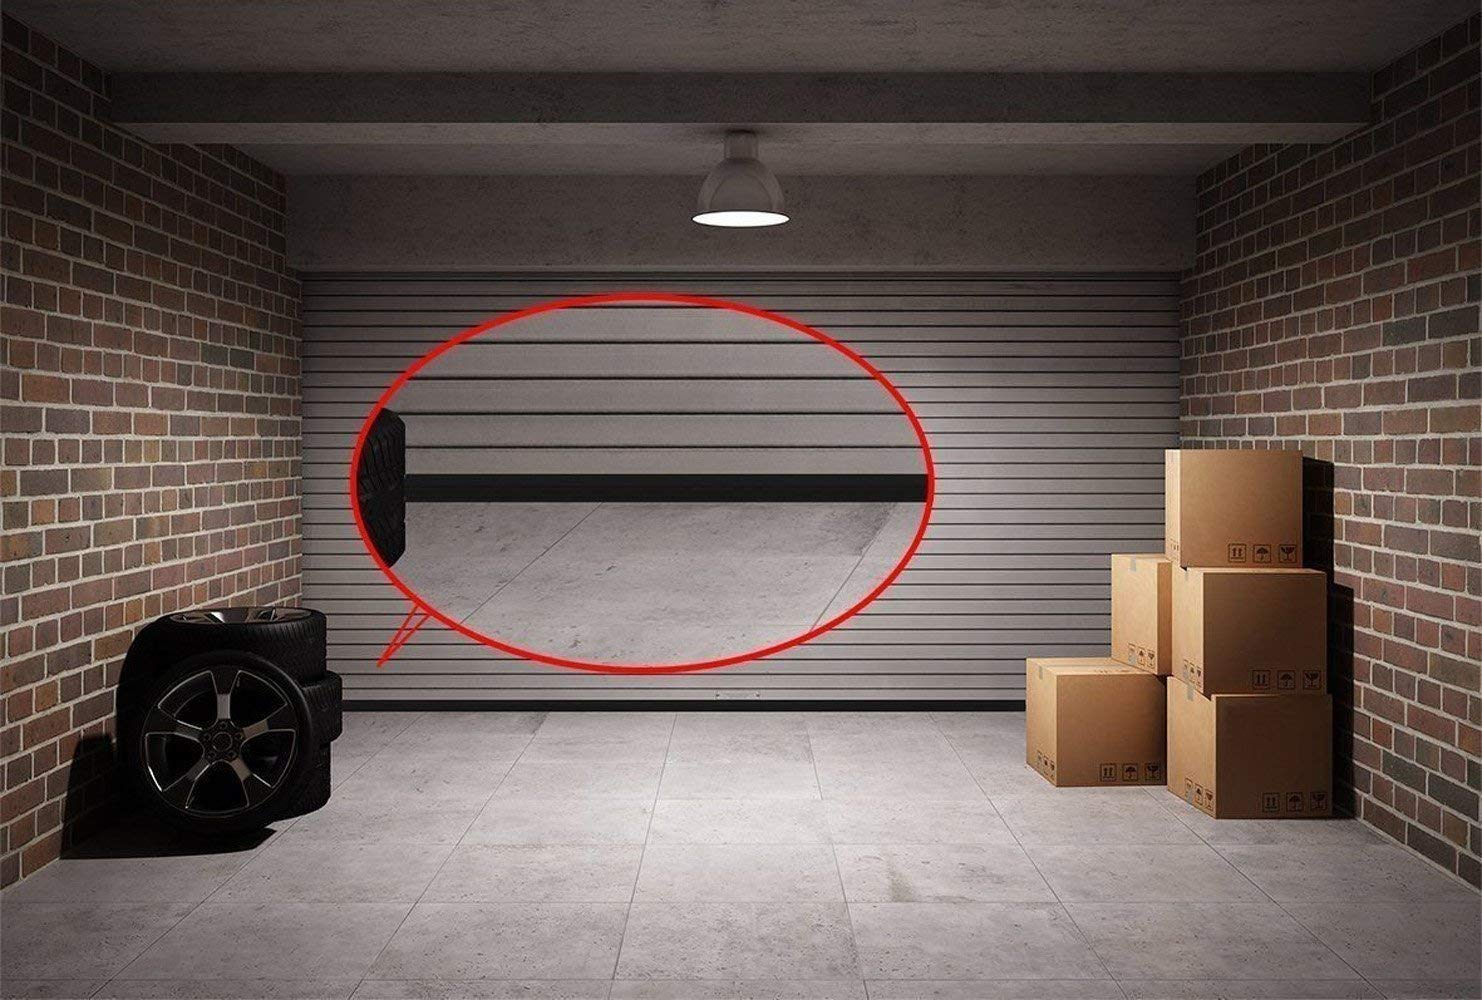 Garage Door Bottom Weather Stripping Kit Rubber Seal Strip Replacement, Weatherproofing Universal Sealing Professional Grade T Rubber,5/16'' T Ends, 3 3/4'' Width X 20 Feet Lenth (Black) by PaPillon (Image #5)